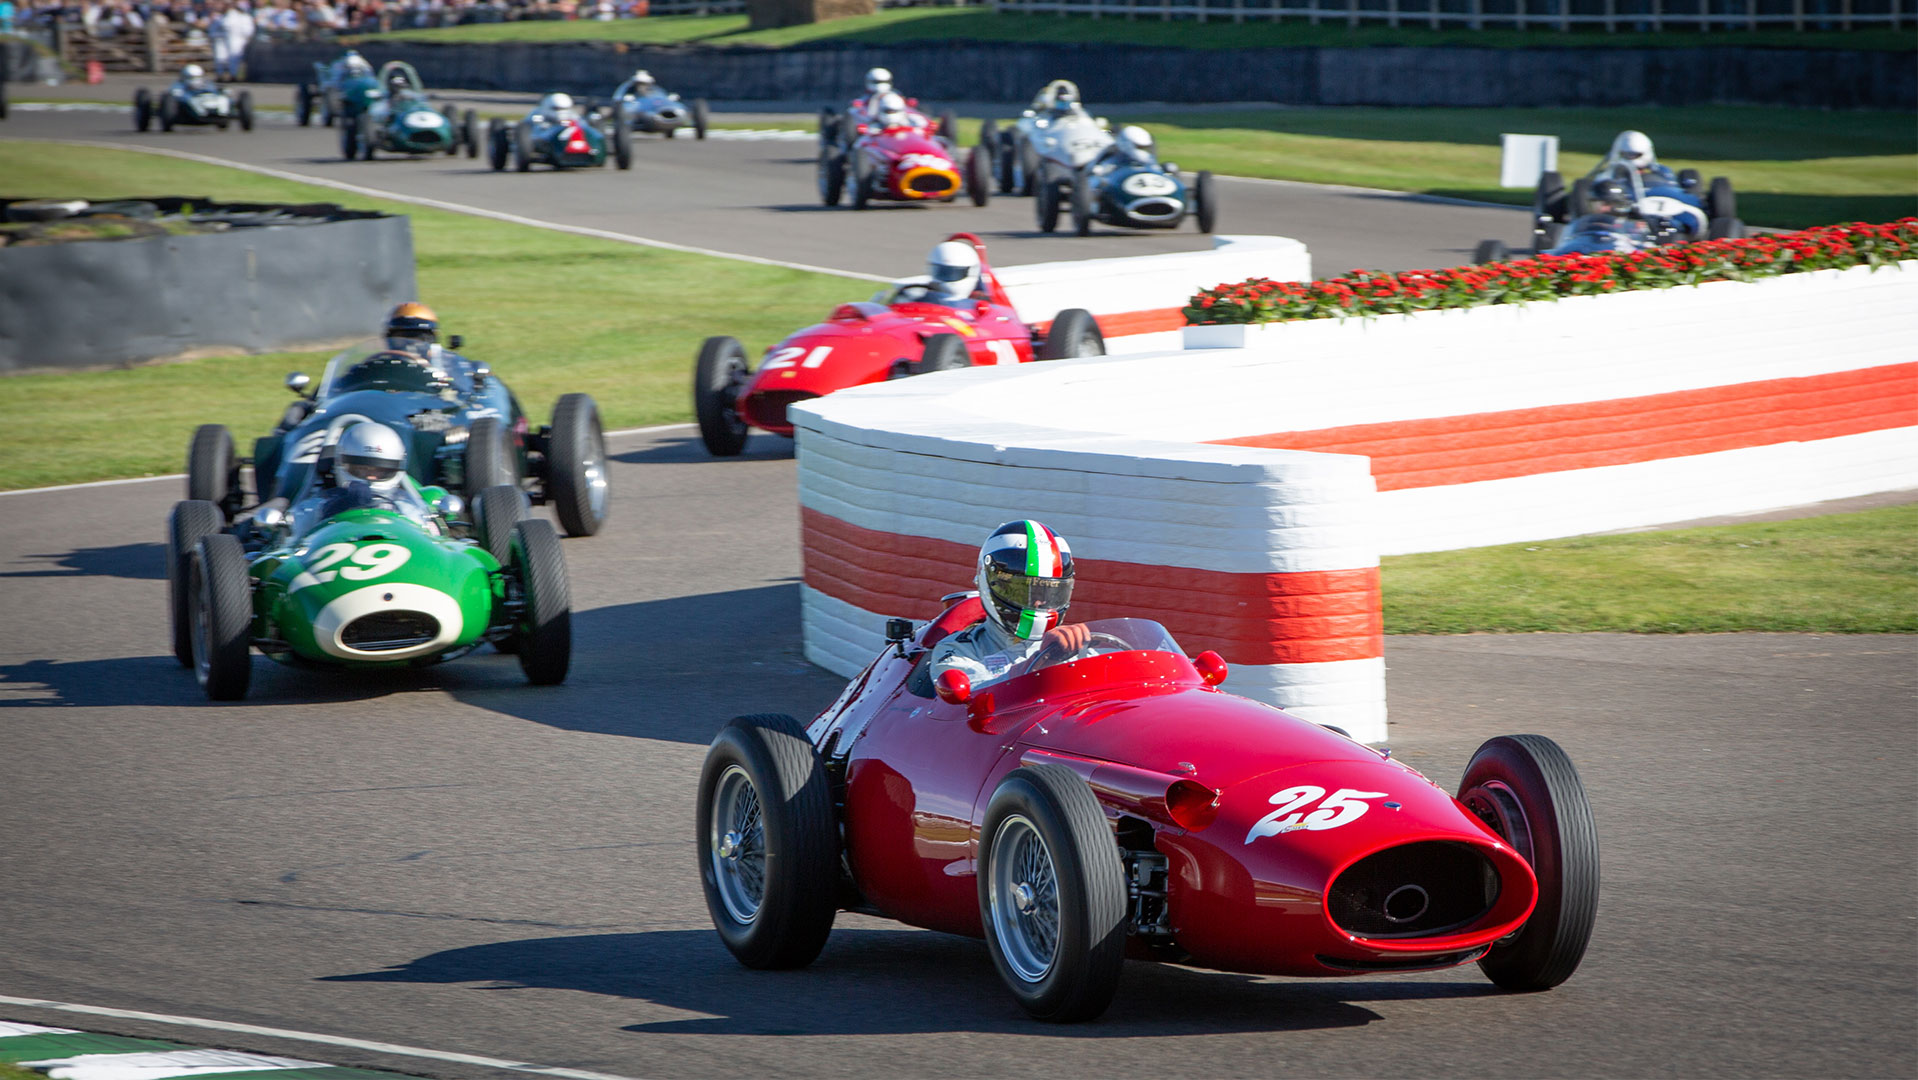 Historic racing at the Goodwood Revival